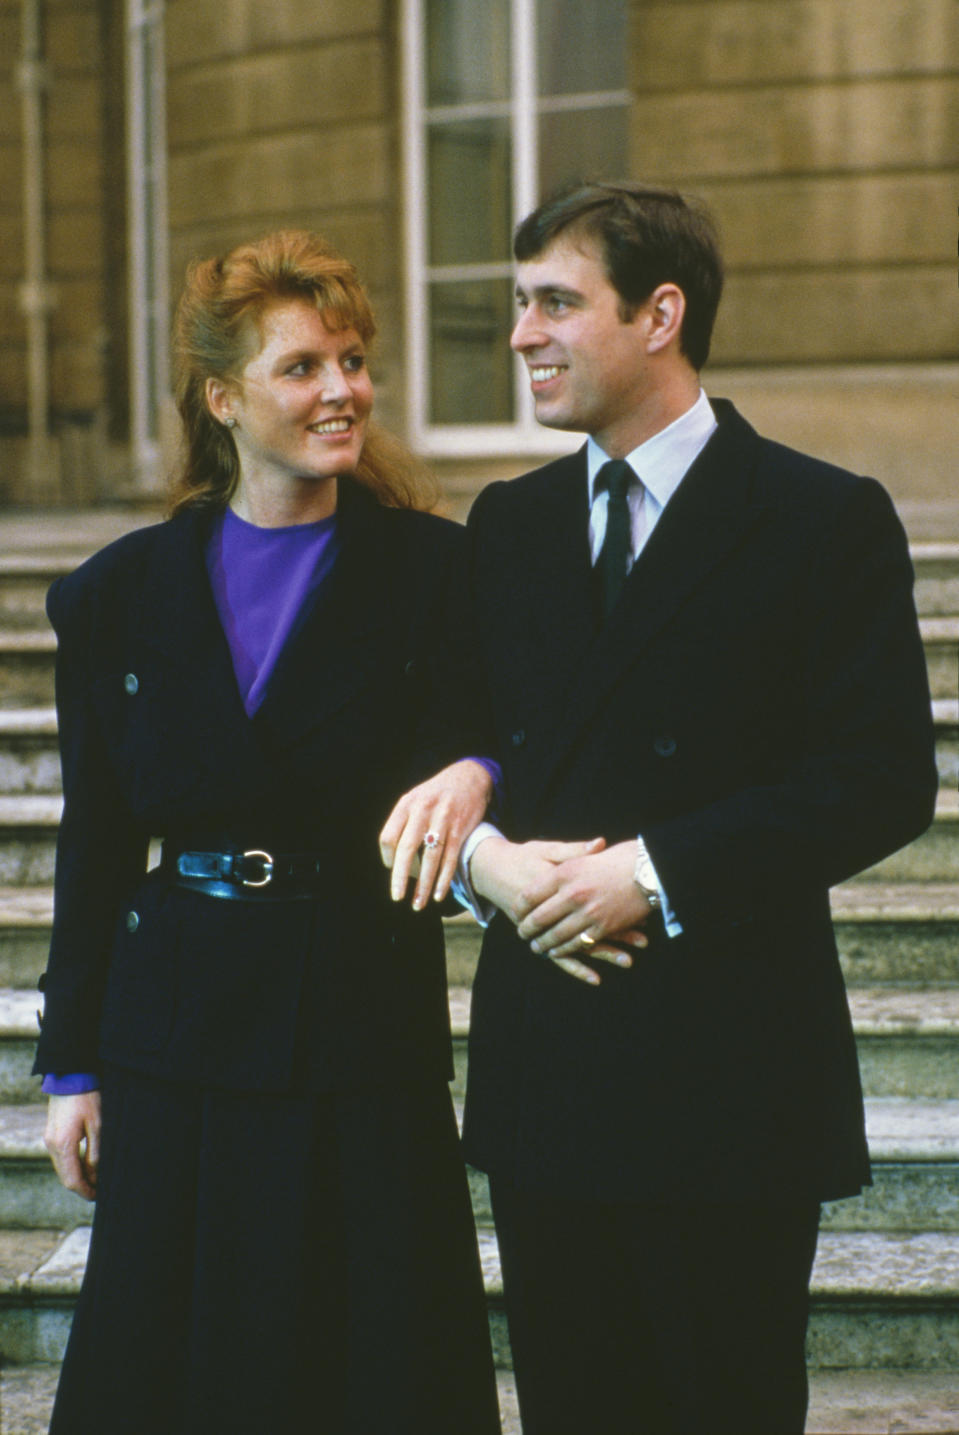 Prince Andrew popped the question to Fergie in 1985. Photo: Getty Images